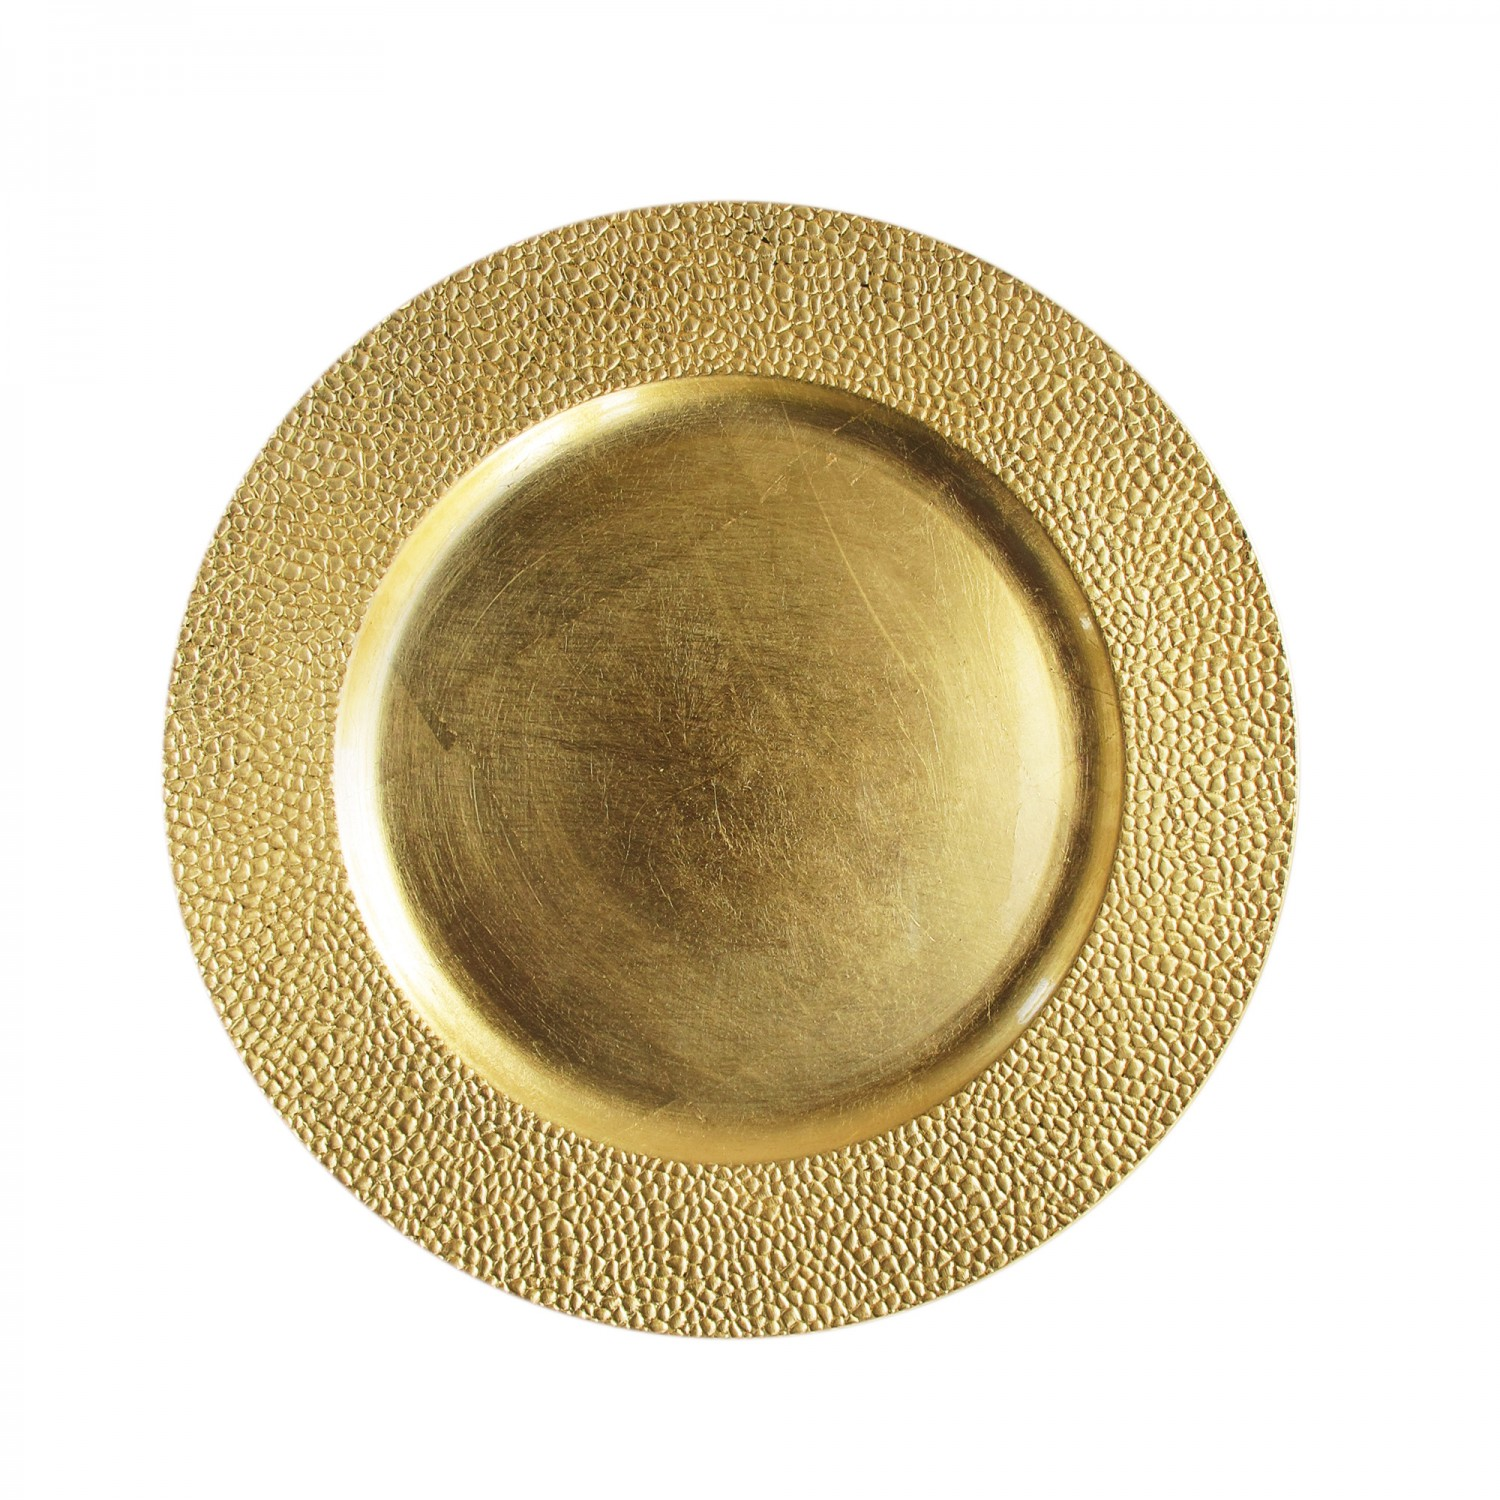 The Jay Companies 1182760 Round Gold Pebbled Charger Plate 13""